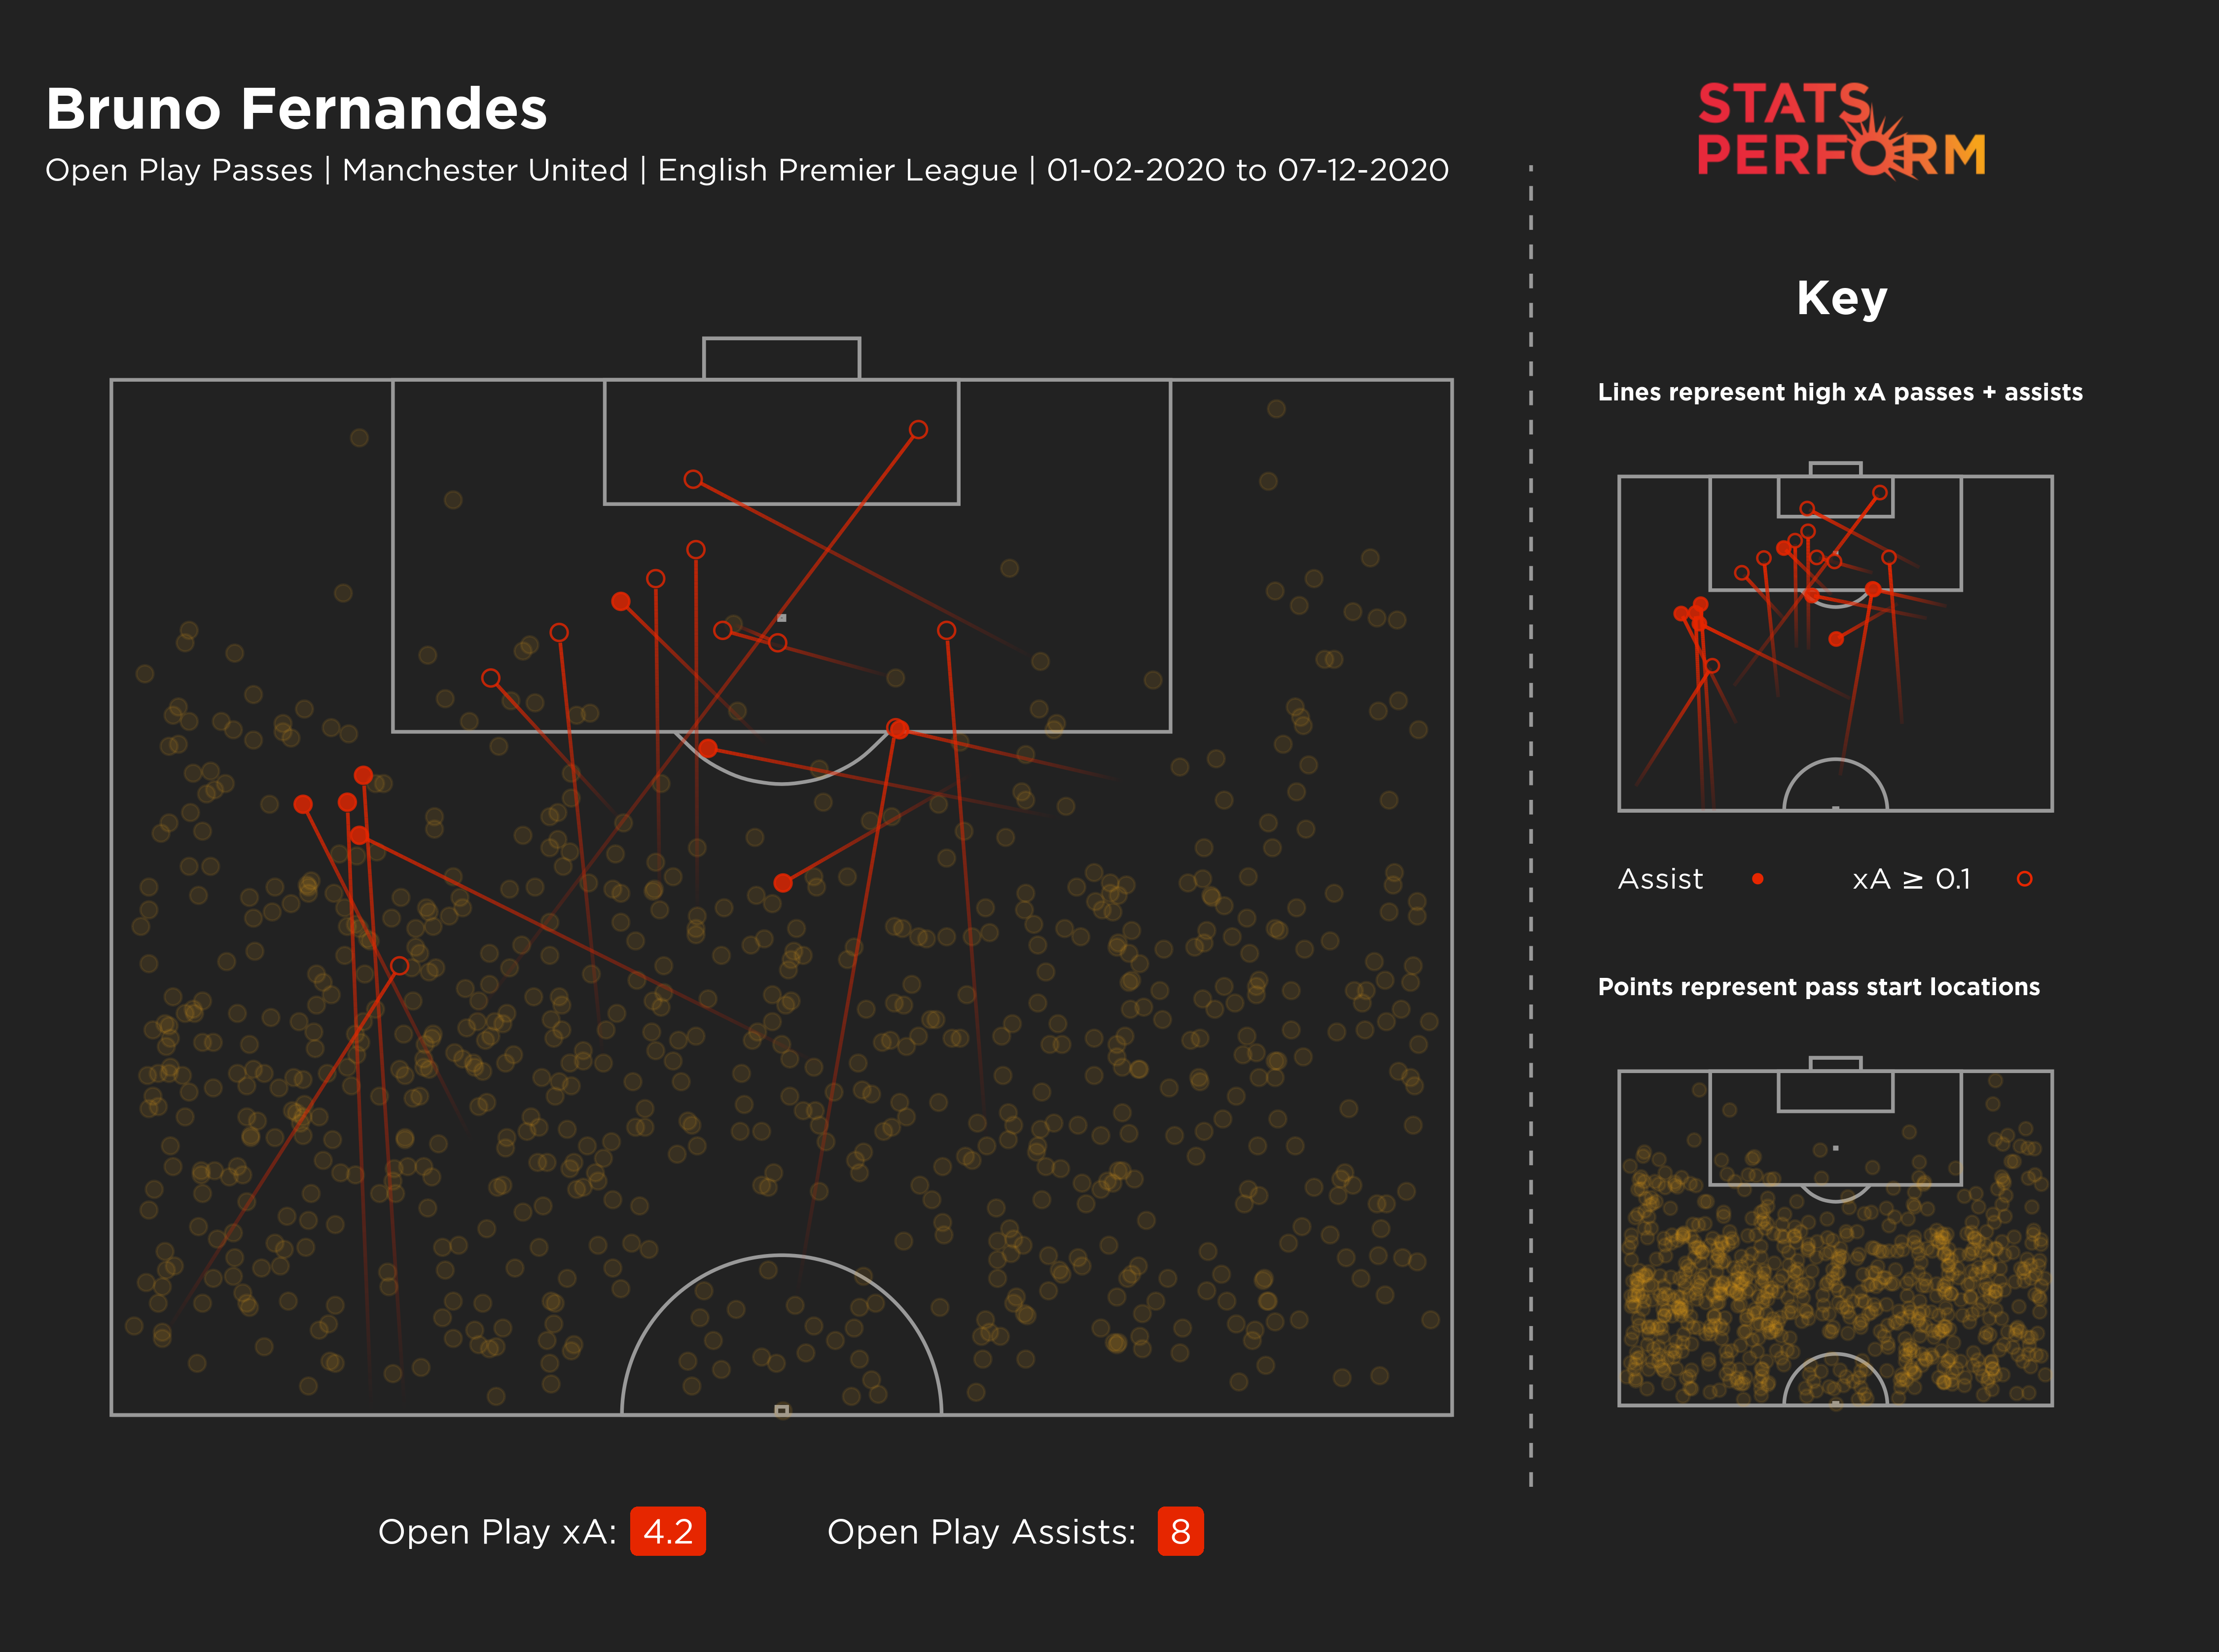 Bruno Fernandes' expected assists map